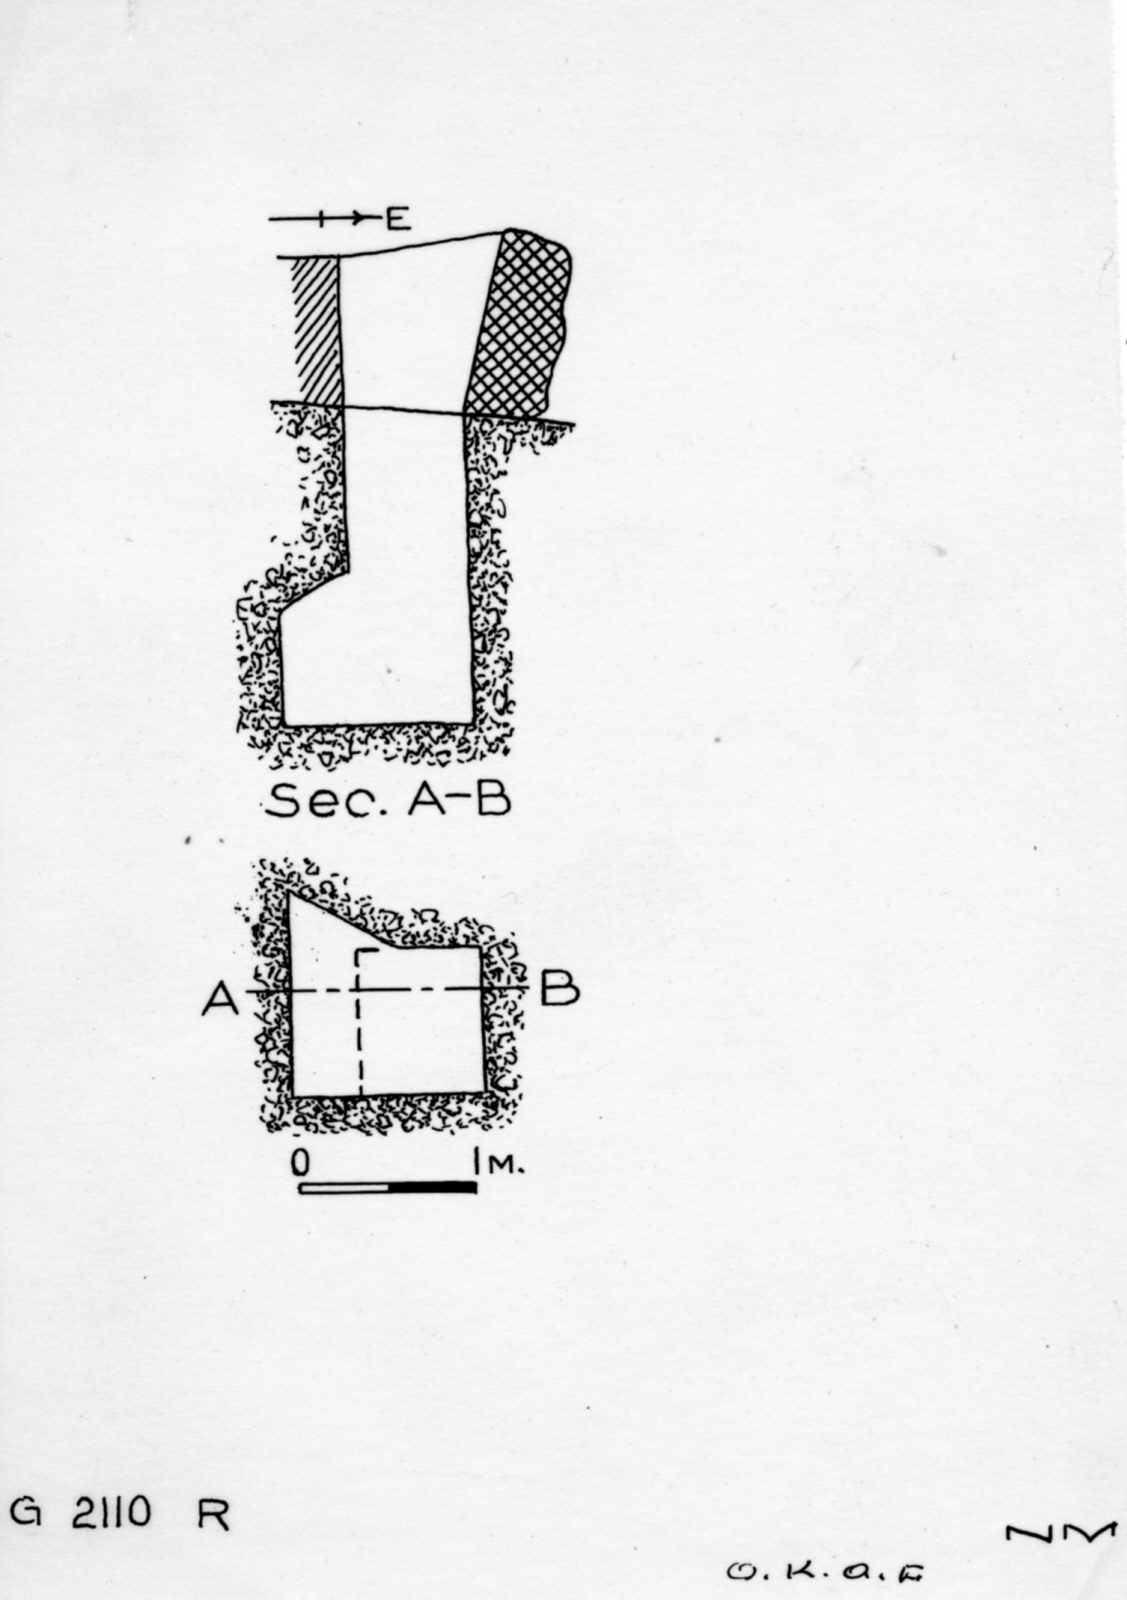 Maps and plans: G 2110, Shaft R